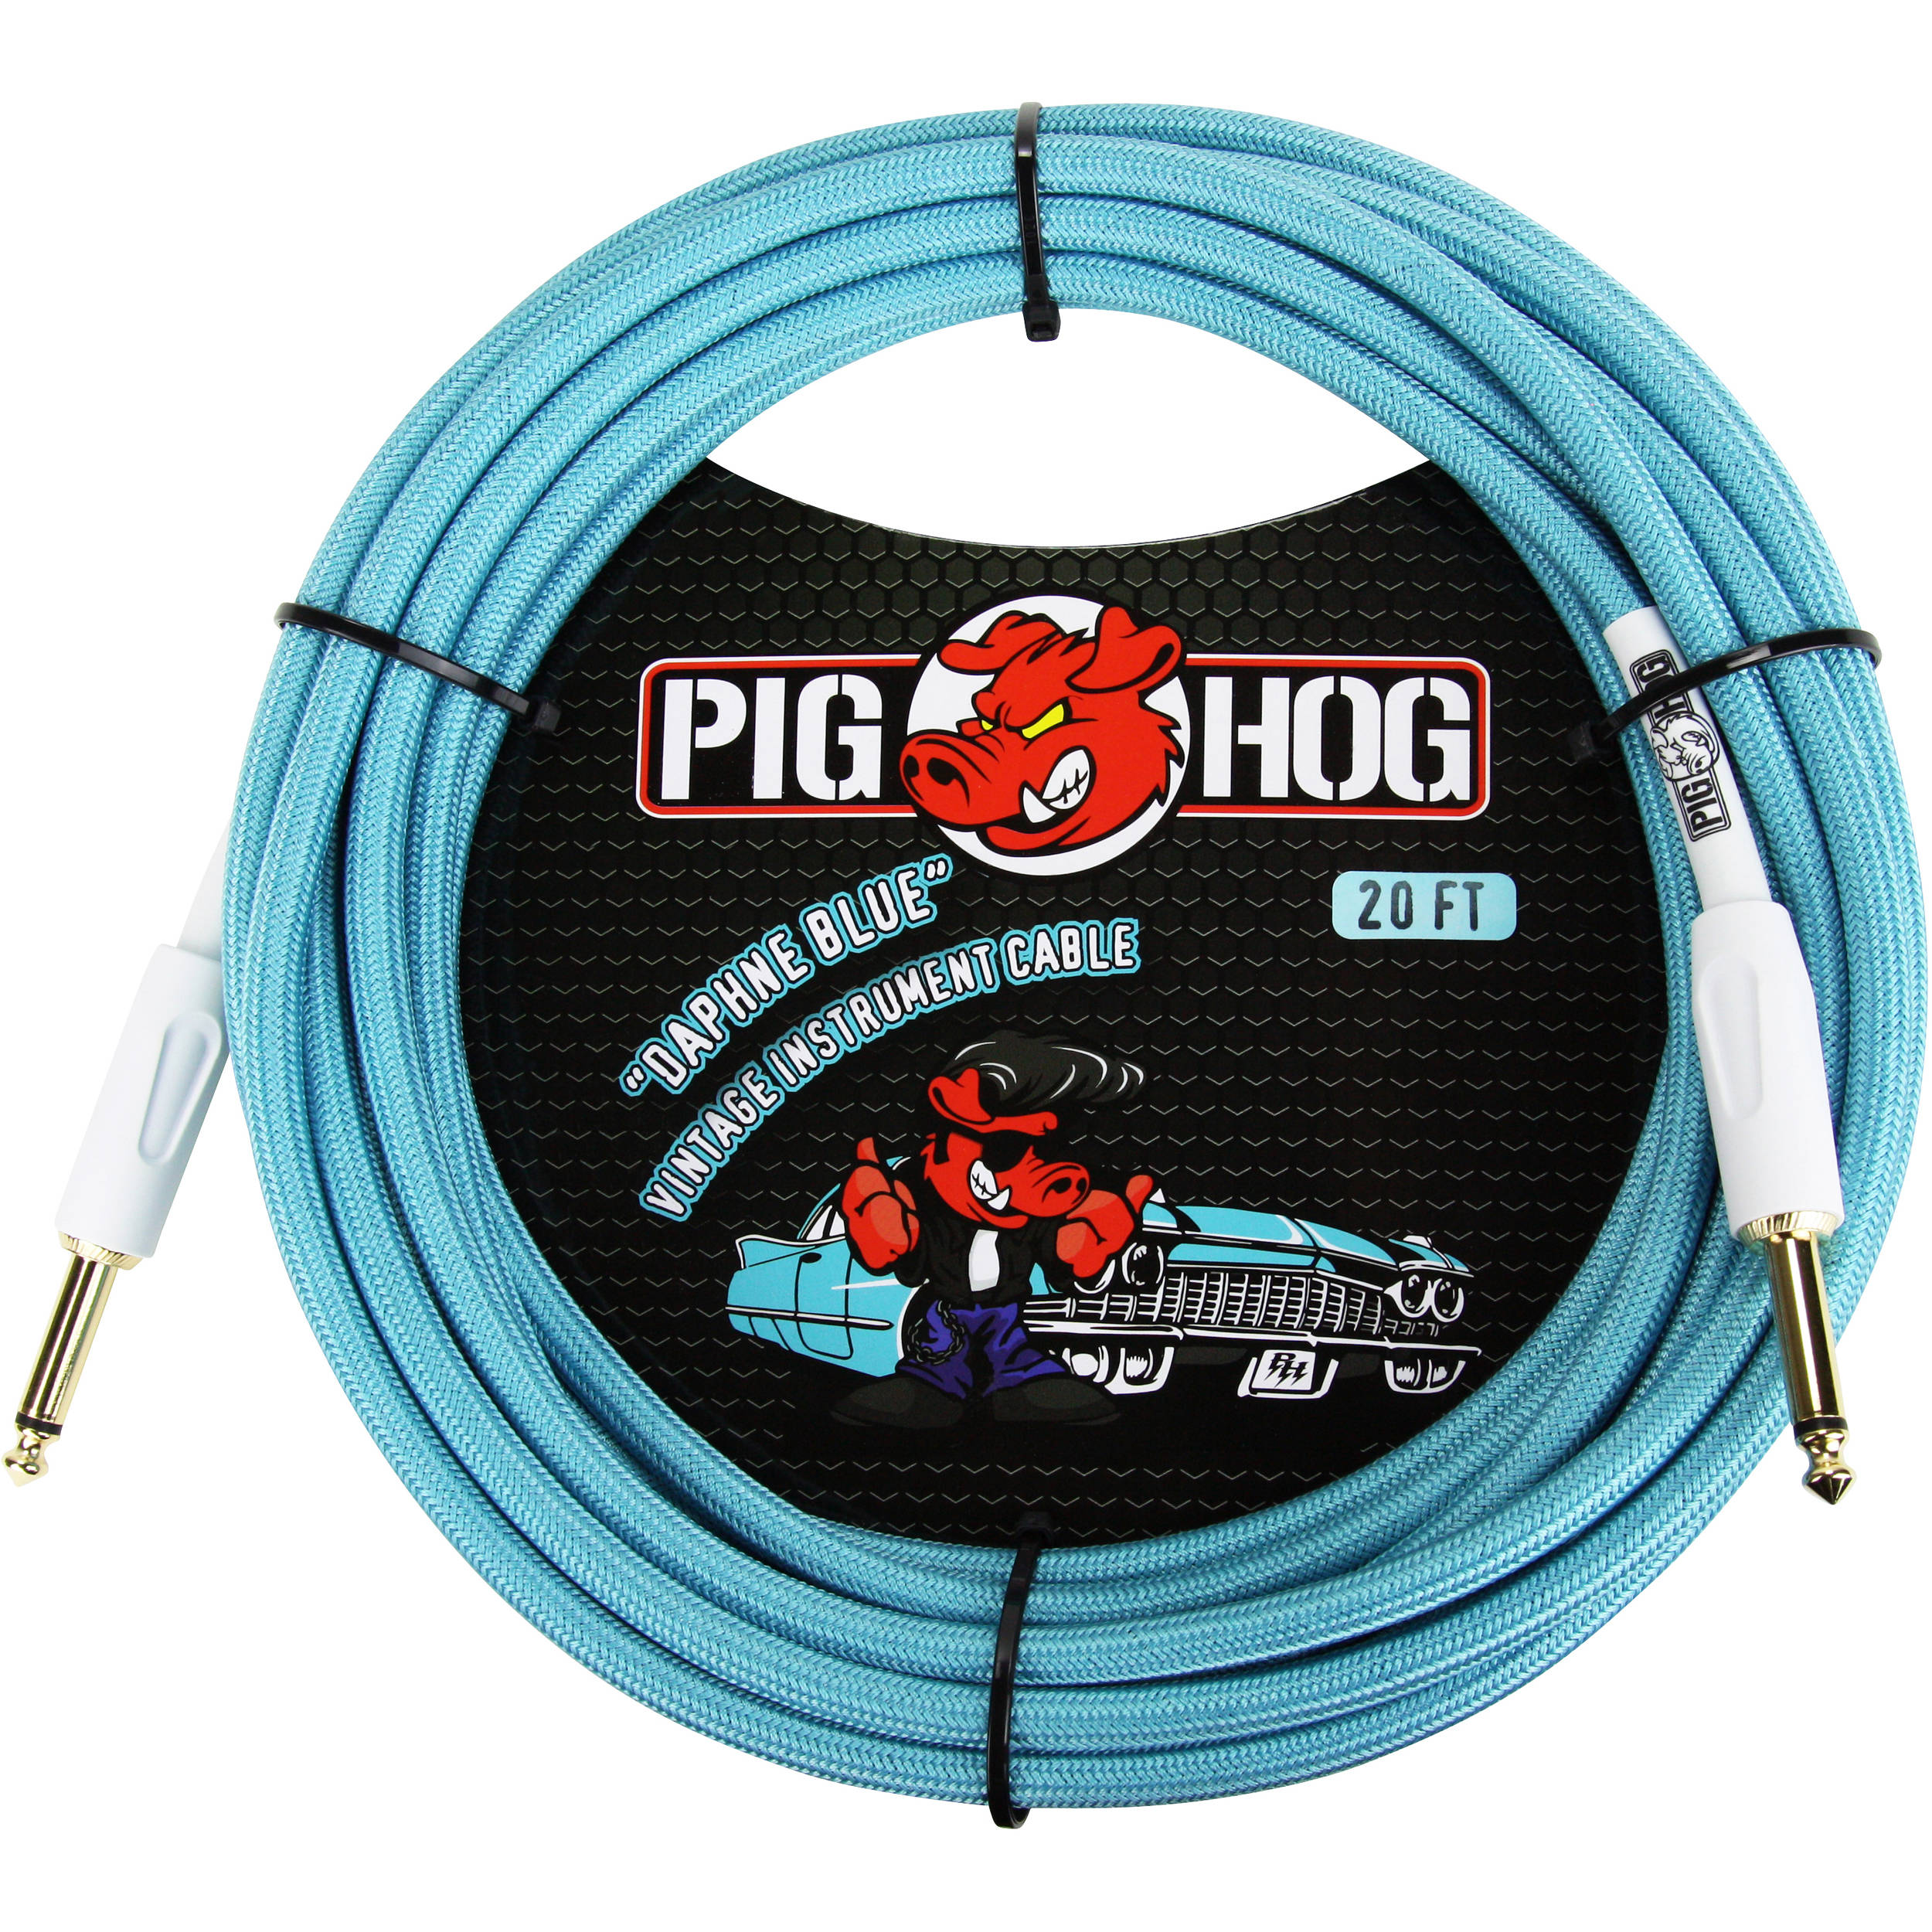 Https C Product 1183023 Reg Super Flat Cat5e Shielded Network Cable Thin Ribbon Patch Cord Pig Hog Pch20db Vintage Series Woven Instrument 1260051